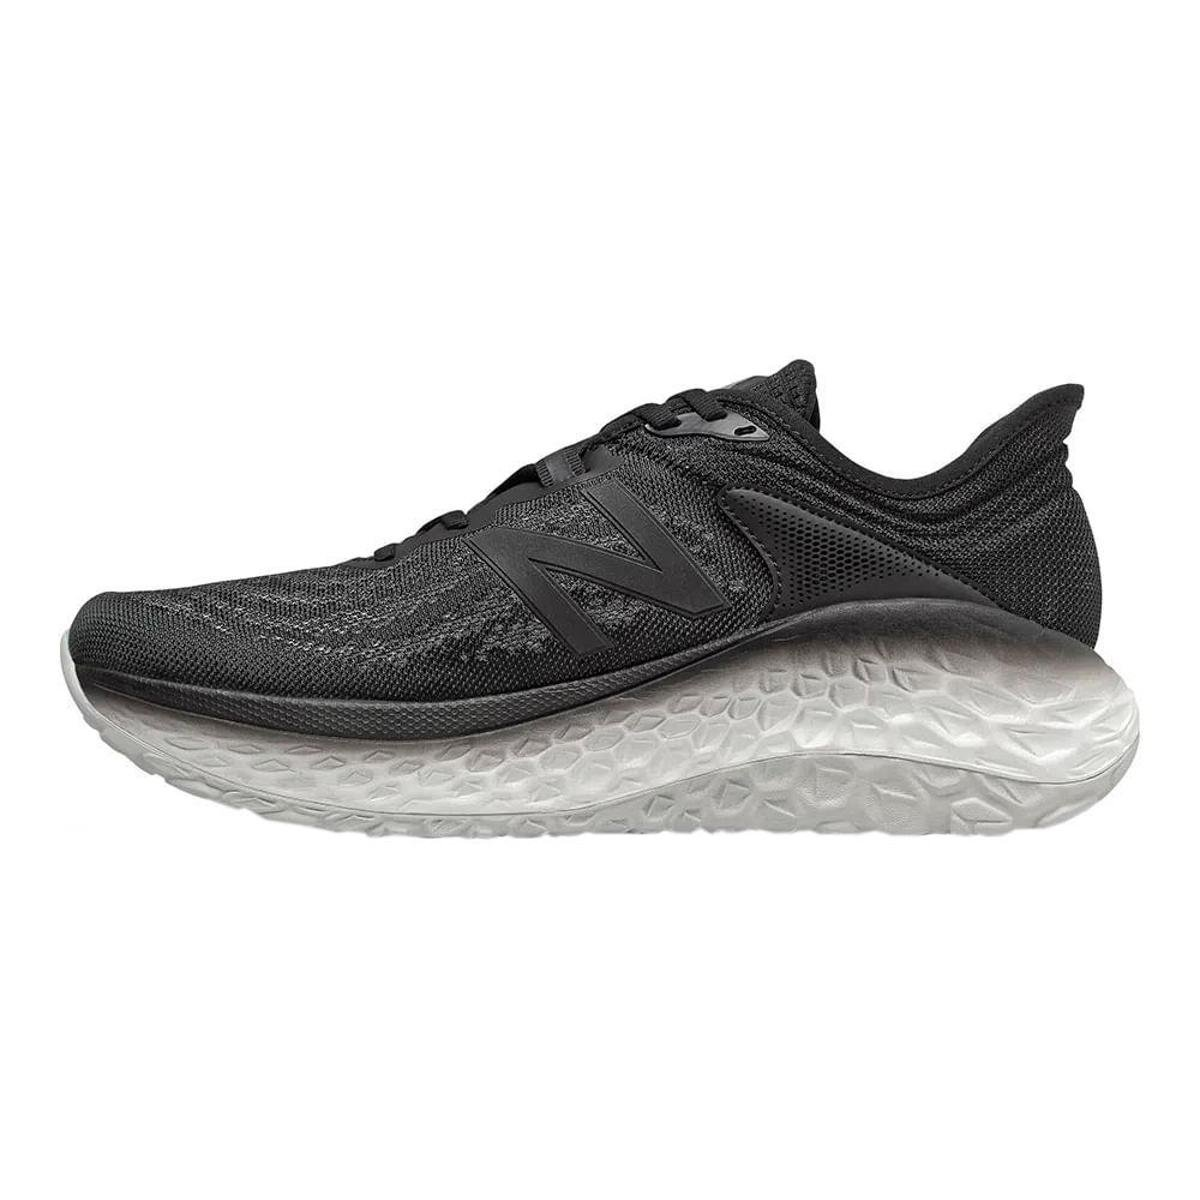 TÊNIS NEW BALANCE MORE - PRETO 42